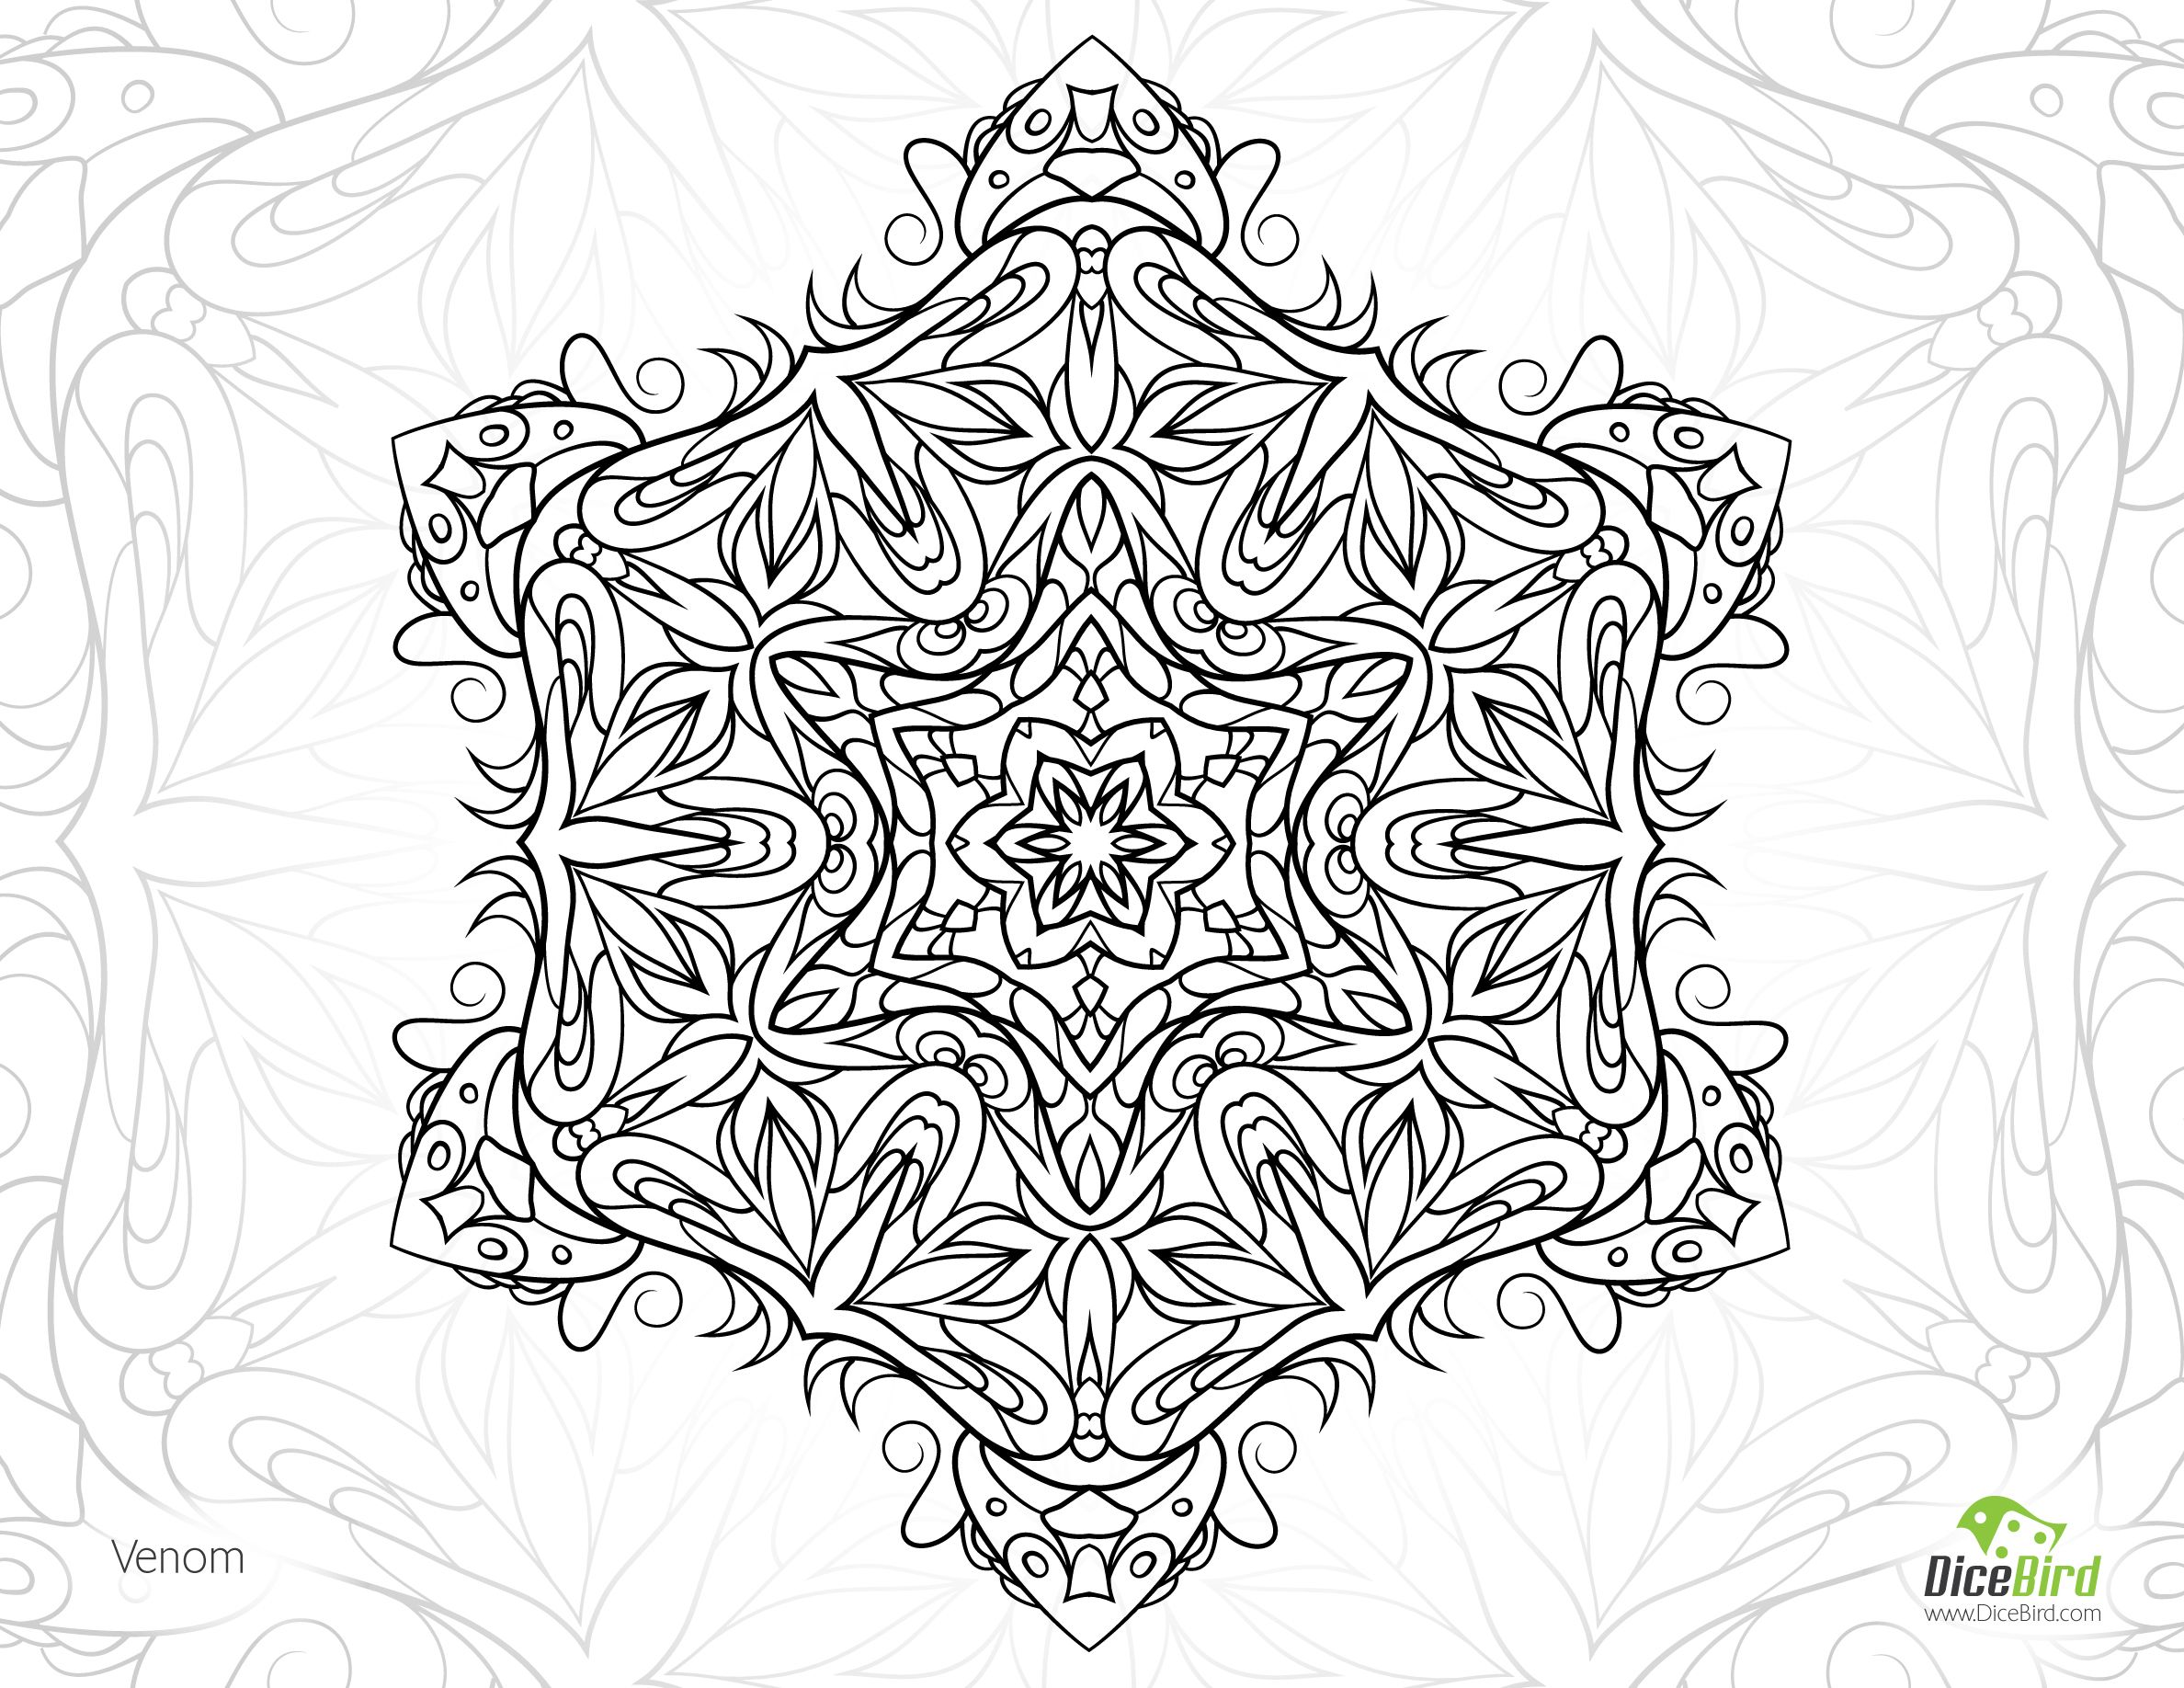 Free coloring pages snakes - Snake Venom Mandala Free Grown Up Coloring Pages